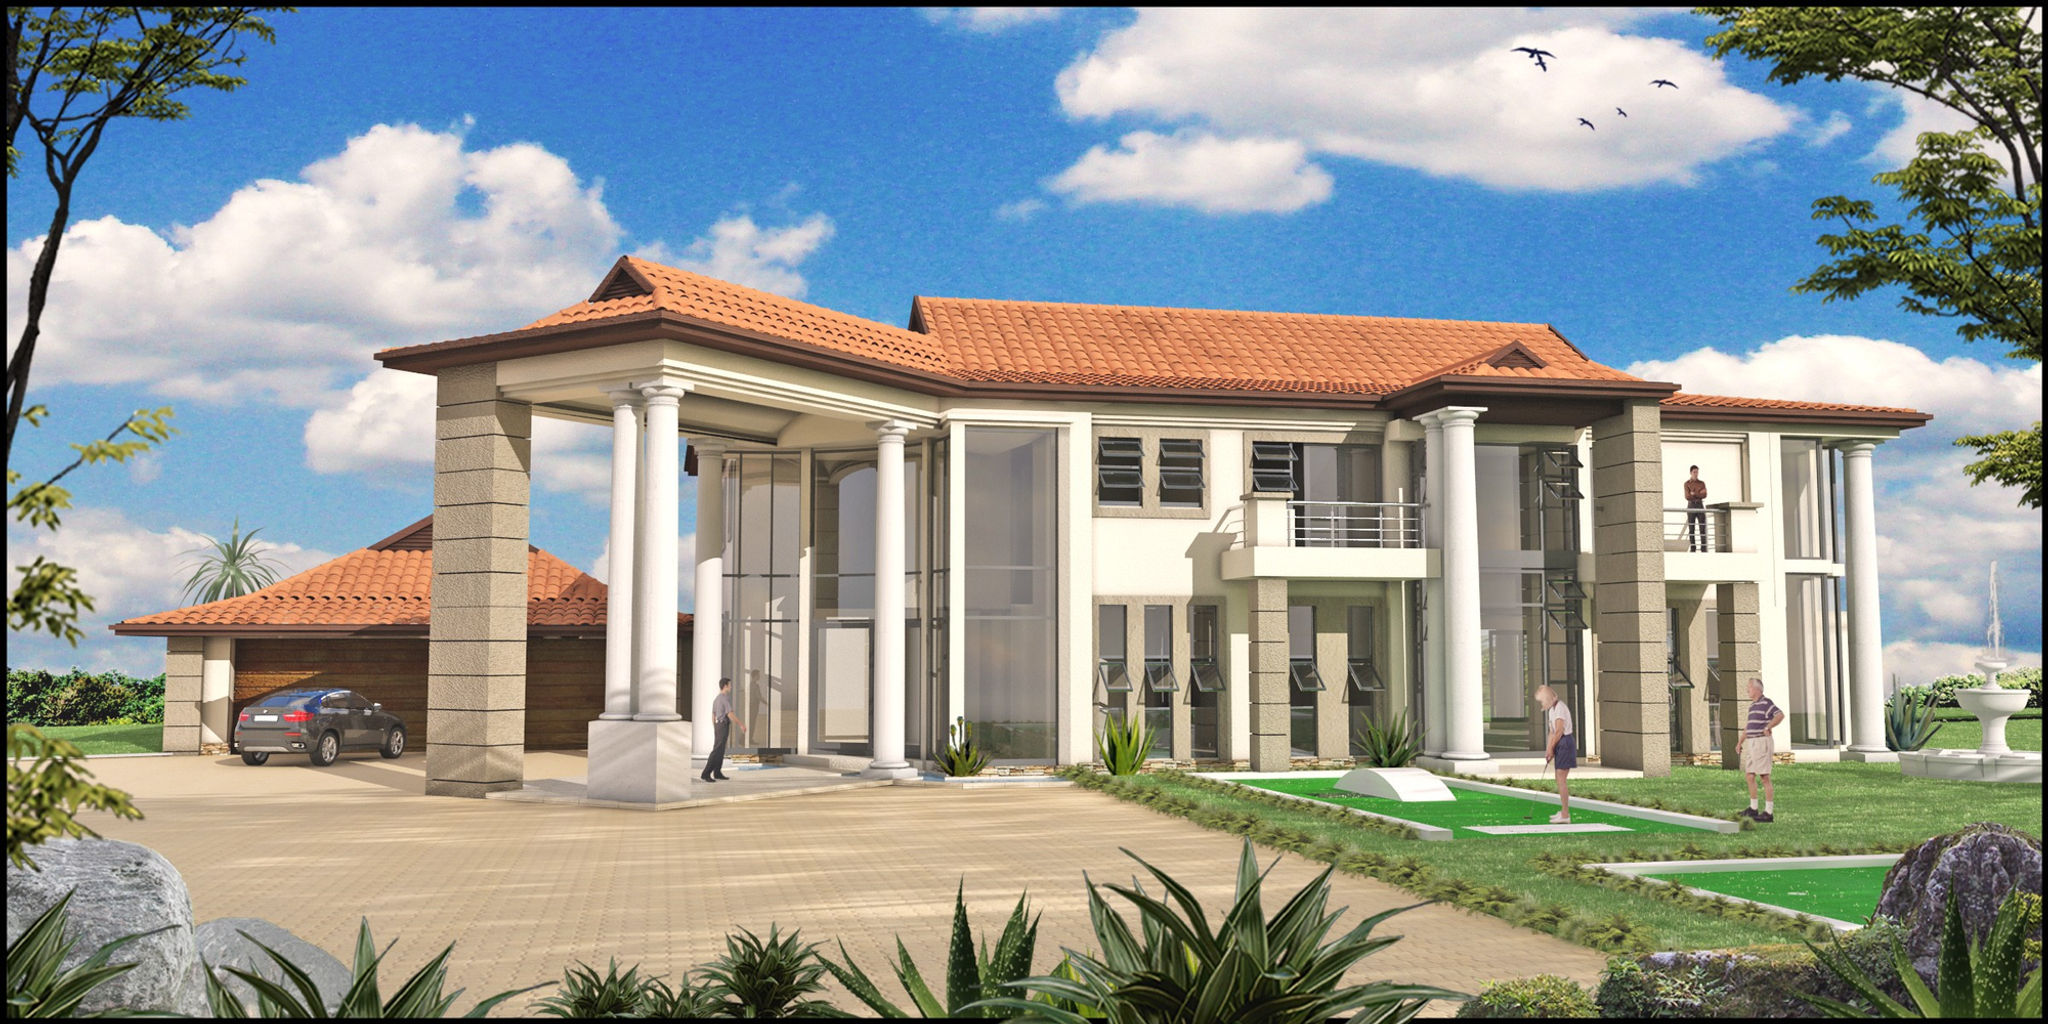 House plans and design house plans south africa for sale for African house plans